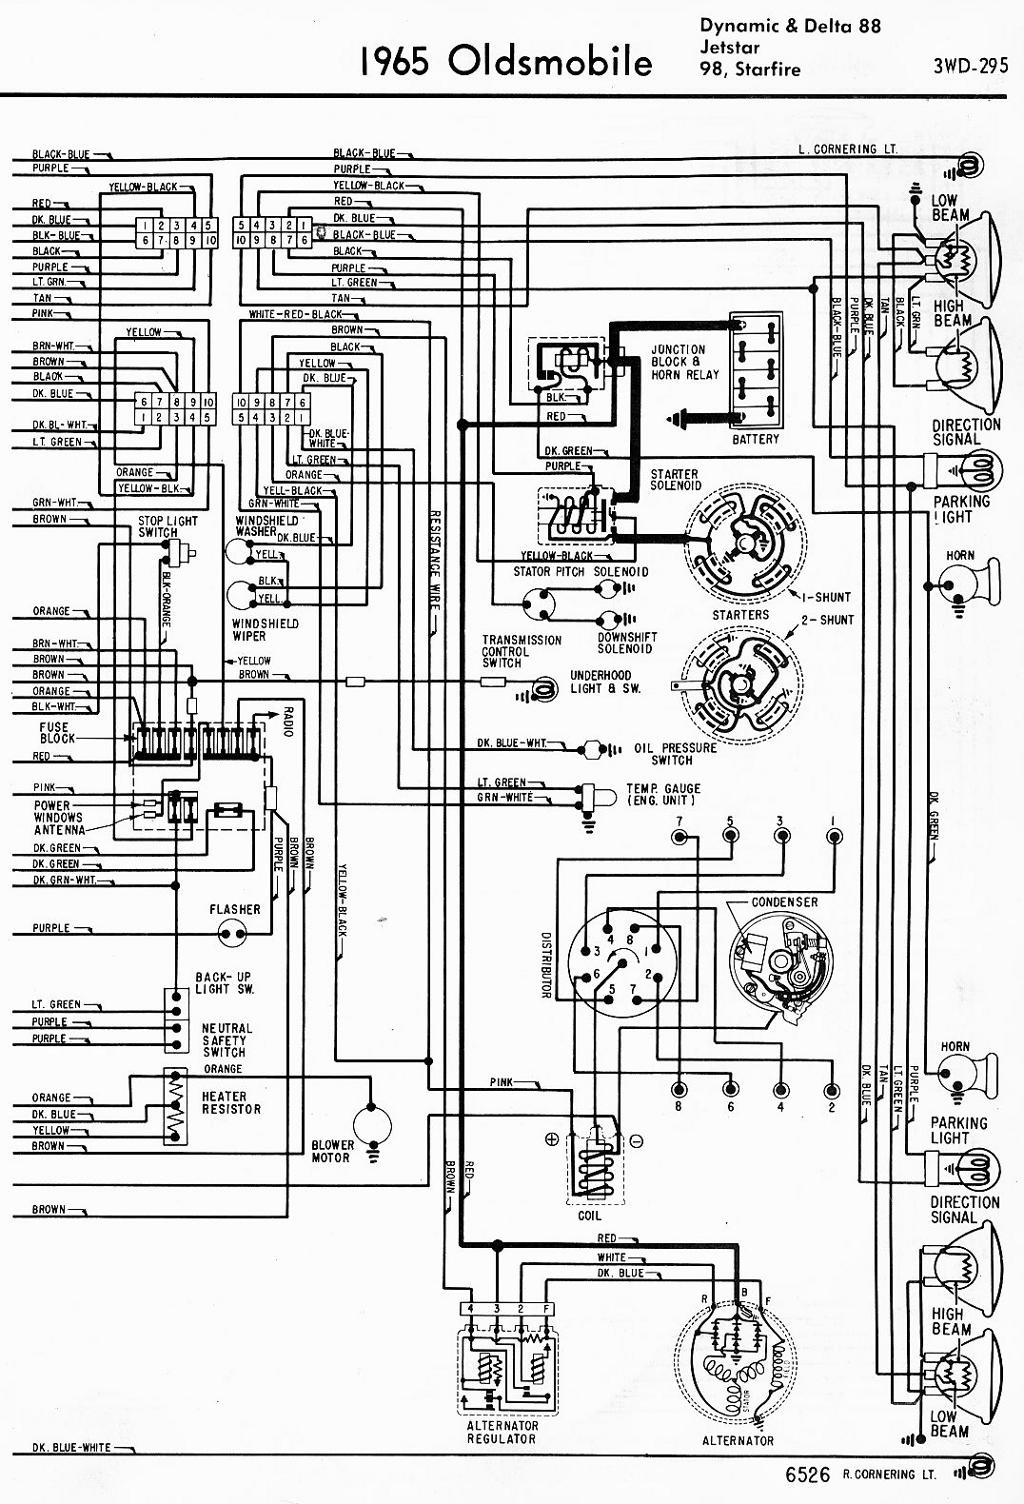 Wiring Diagram For A 1966 Dynamic 88